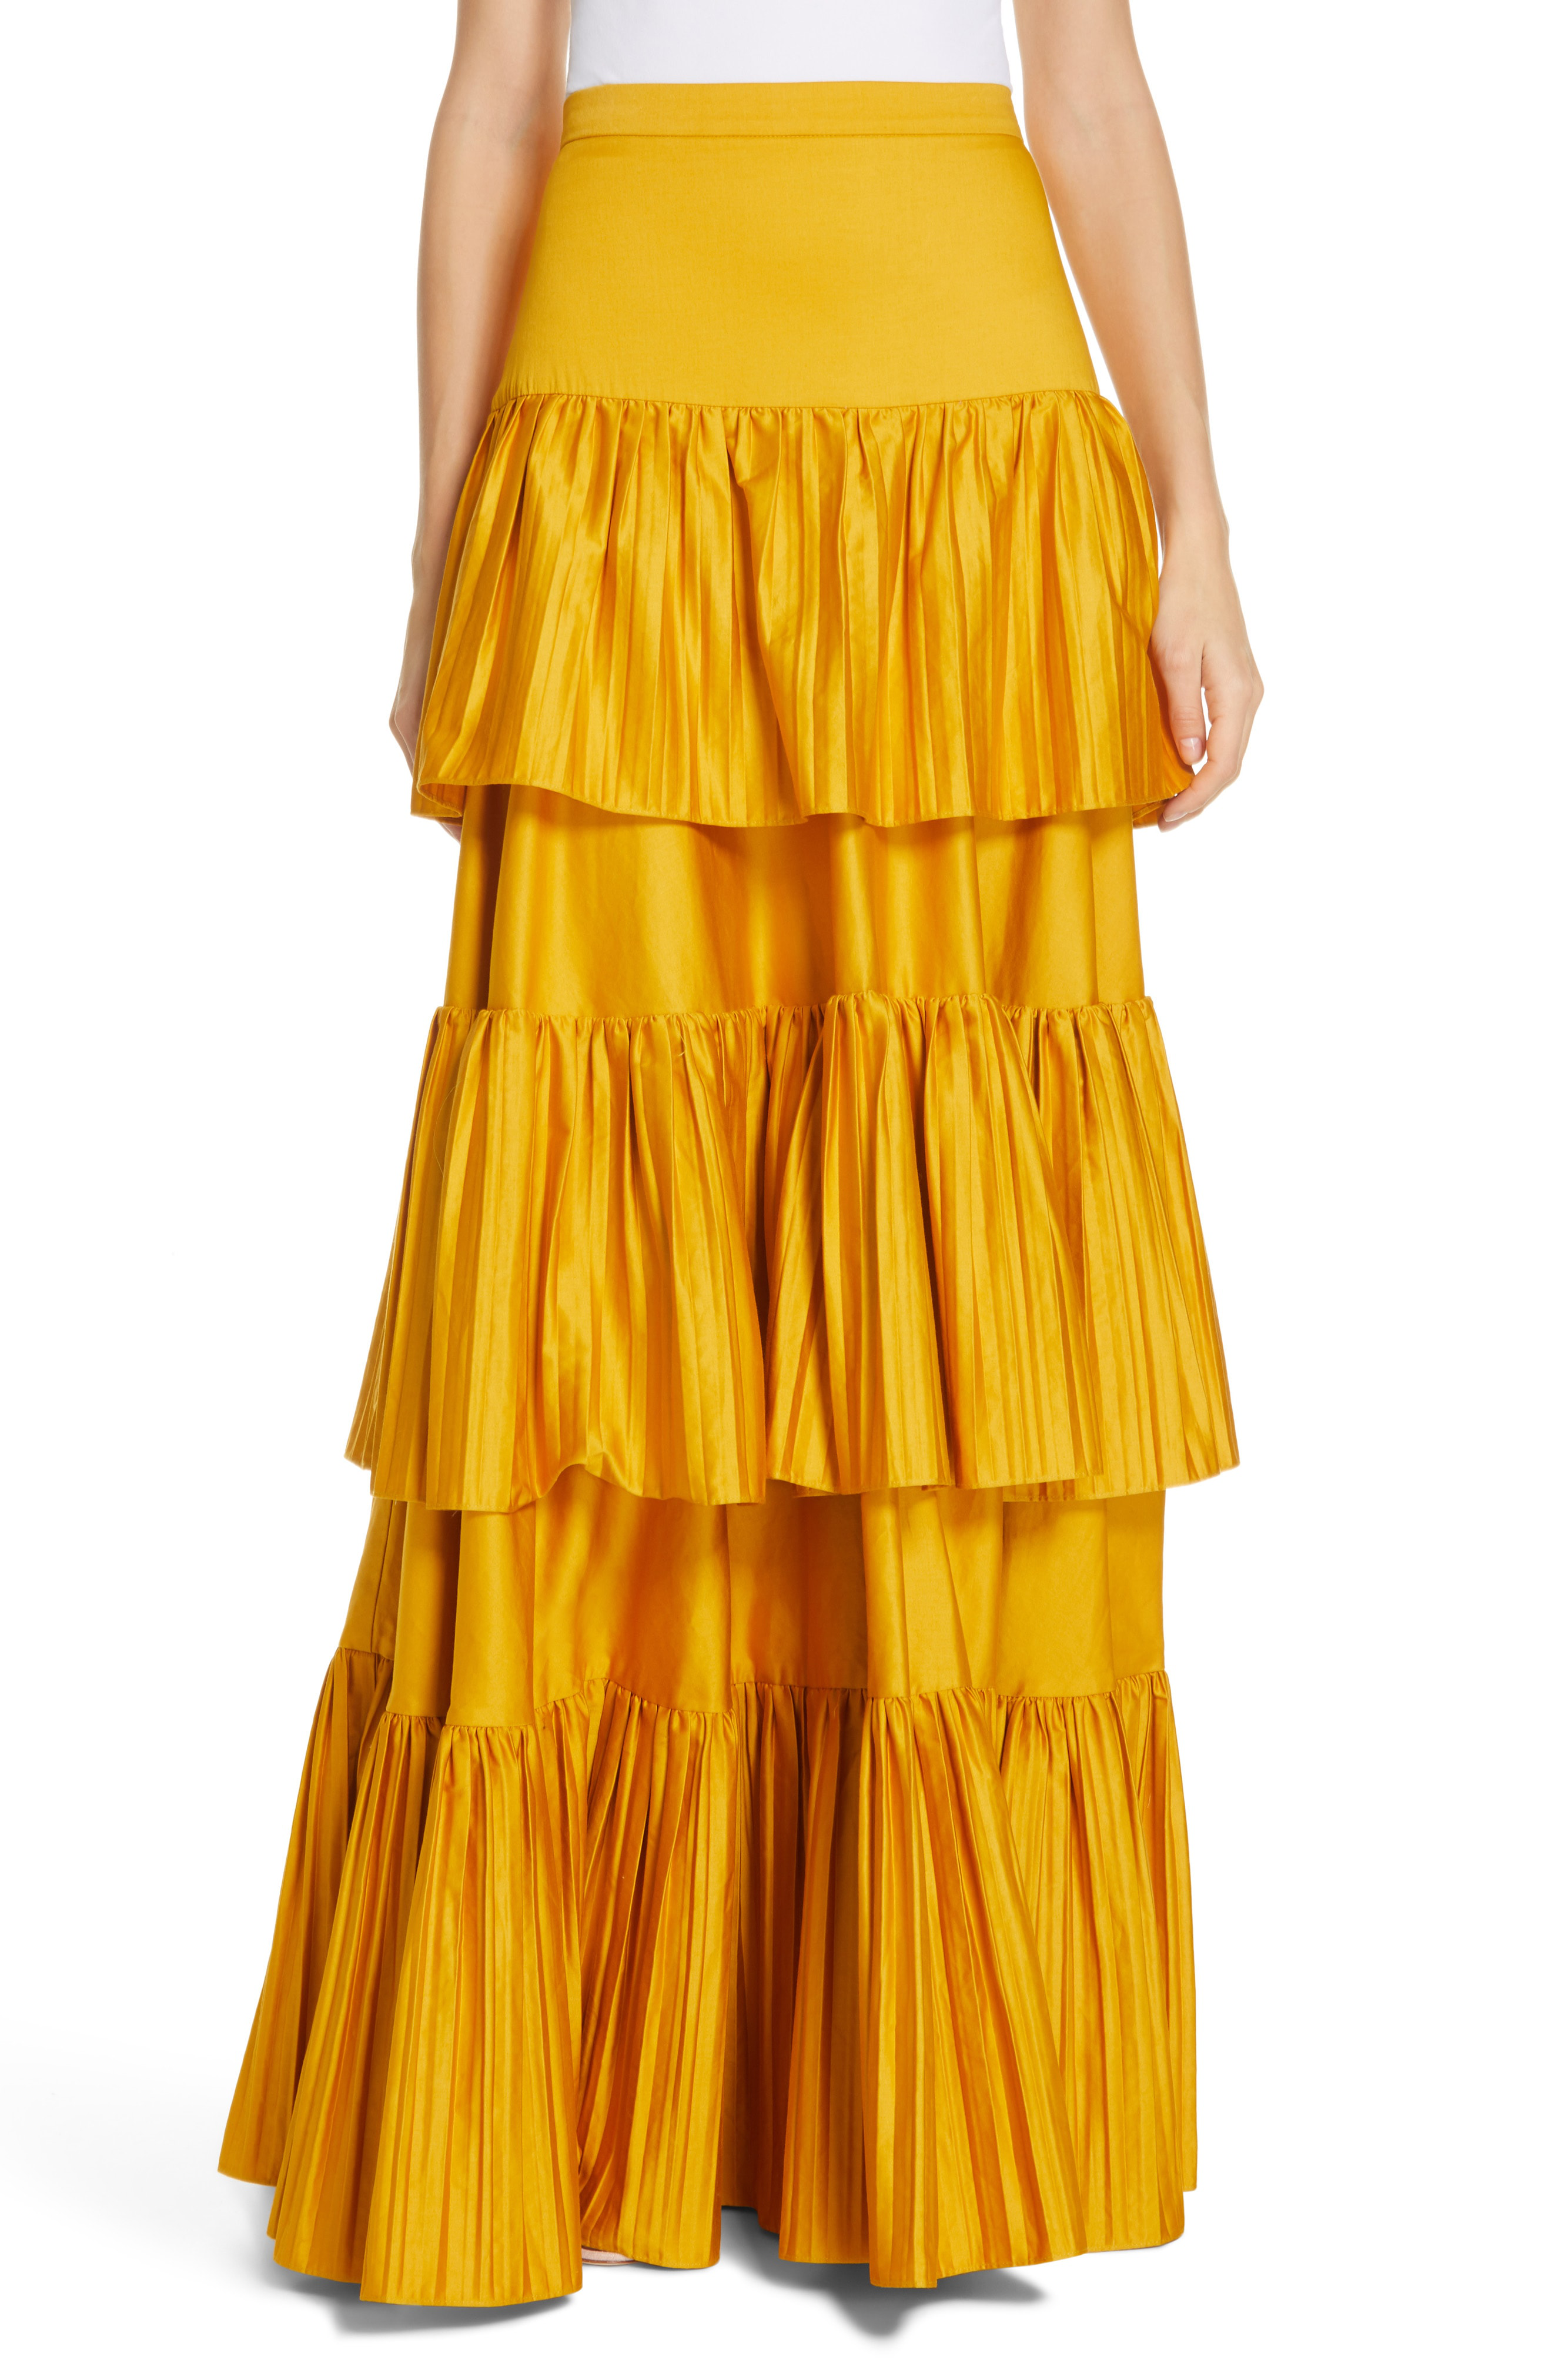 4d189b8d2e57 Pleated tiers playfully flounce from a colorful maxi skirt crafted using  certified organic cotton as part of AMUR s commitment to sustainability.